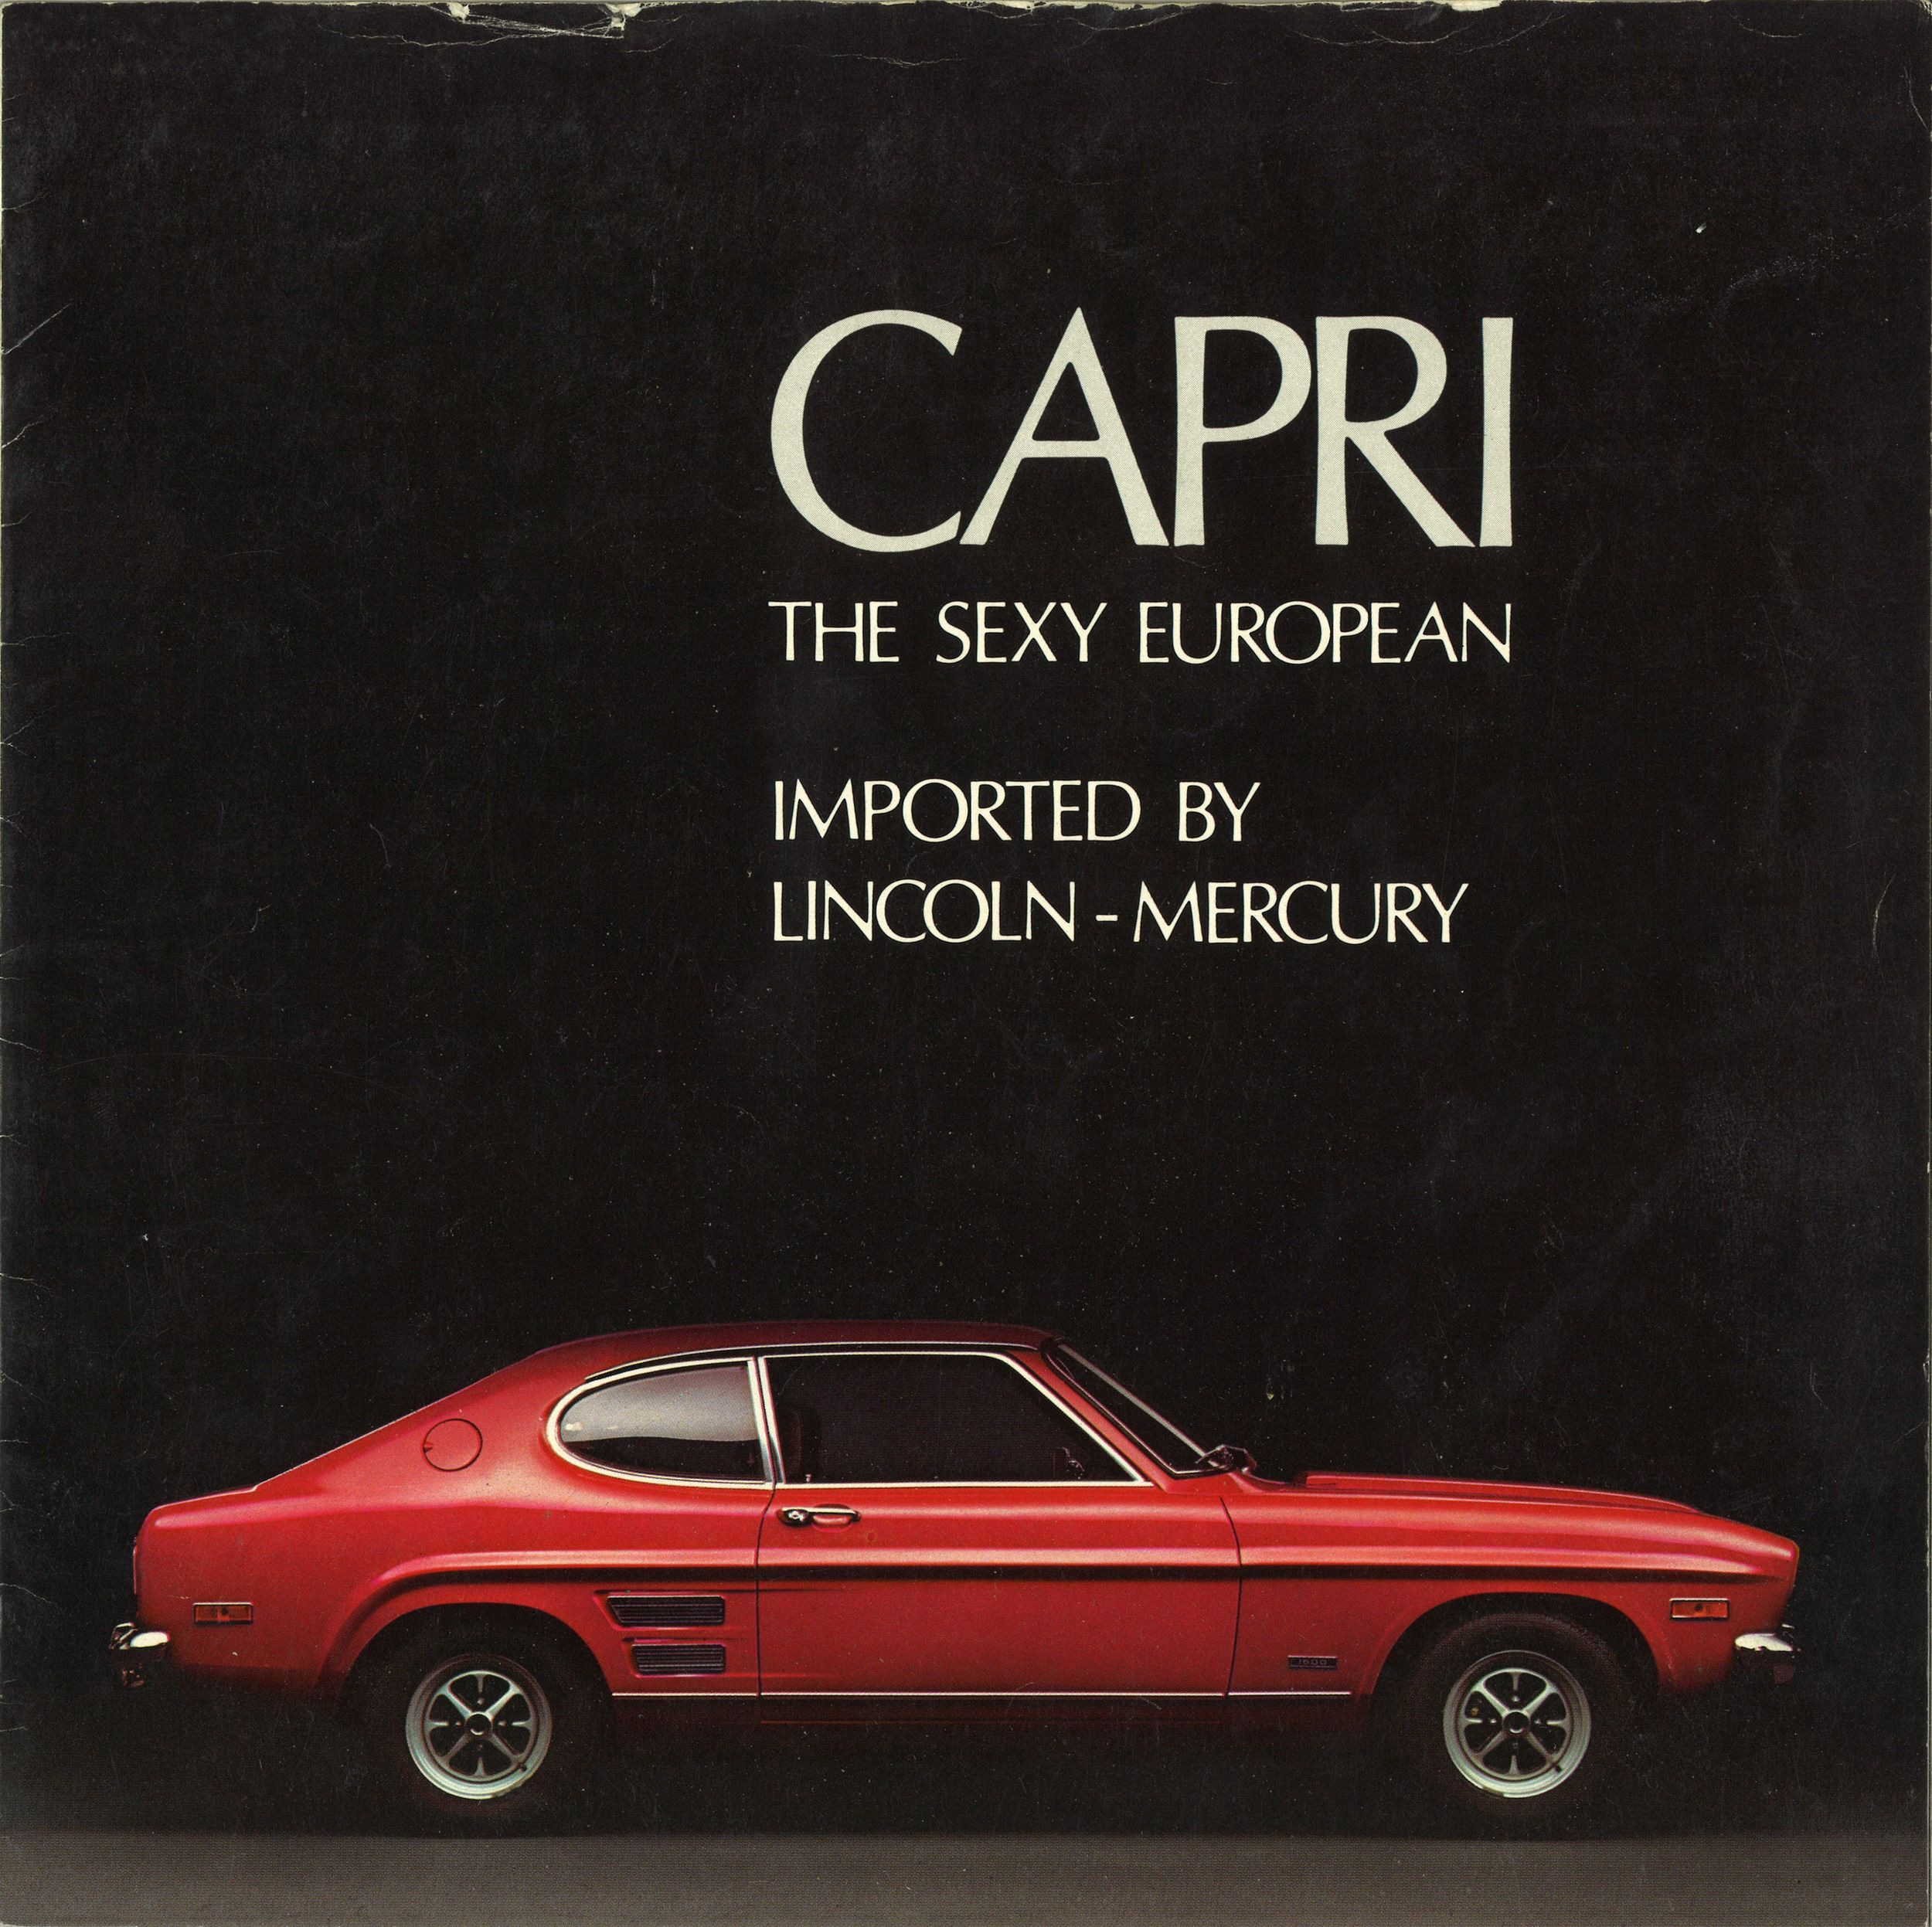 The Sexy European 1970 Ford Capri brochure | Hemmings Daily  sc 1 st  Pinterest : ford capri cars - markmcfarlin.com